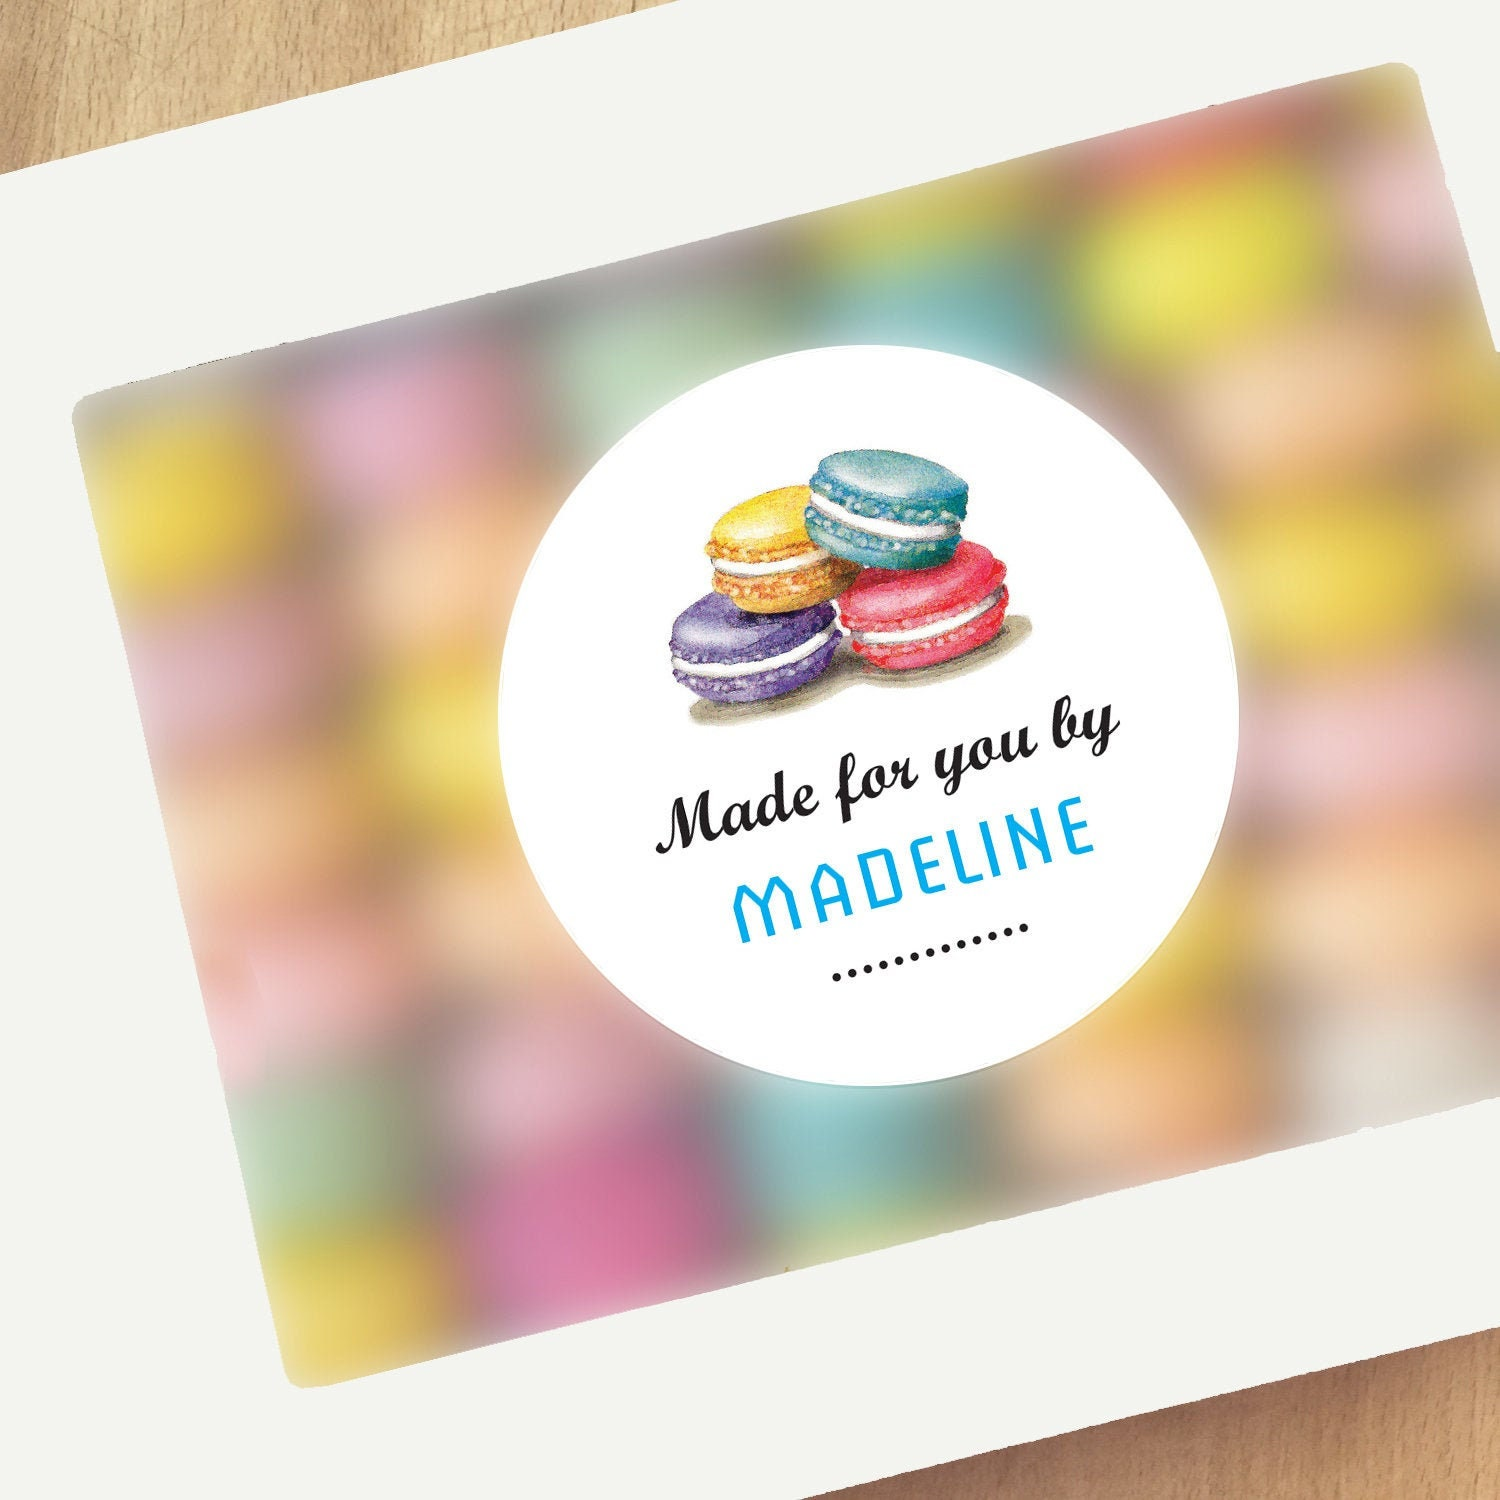 Macaron box labels 12 baking stickers personalized kitchen gift bakery box labels made for you by sticker 2 5 circle